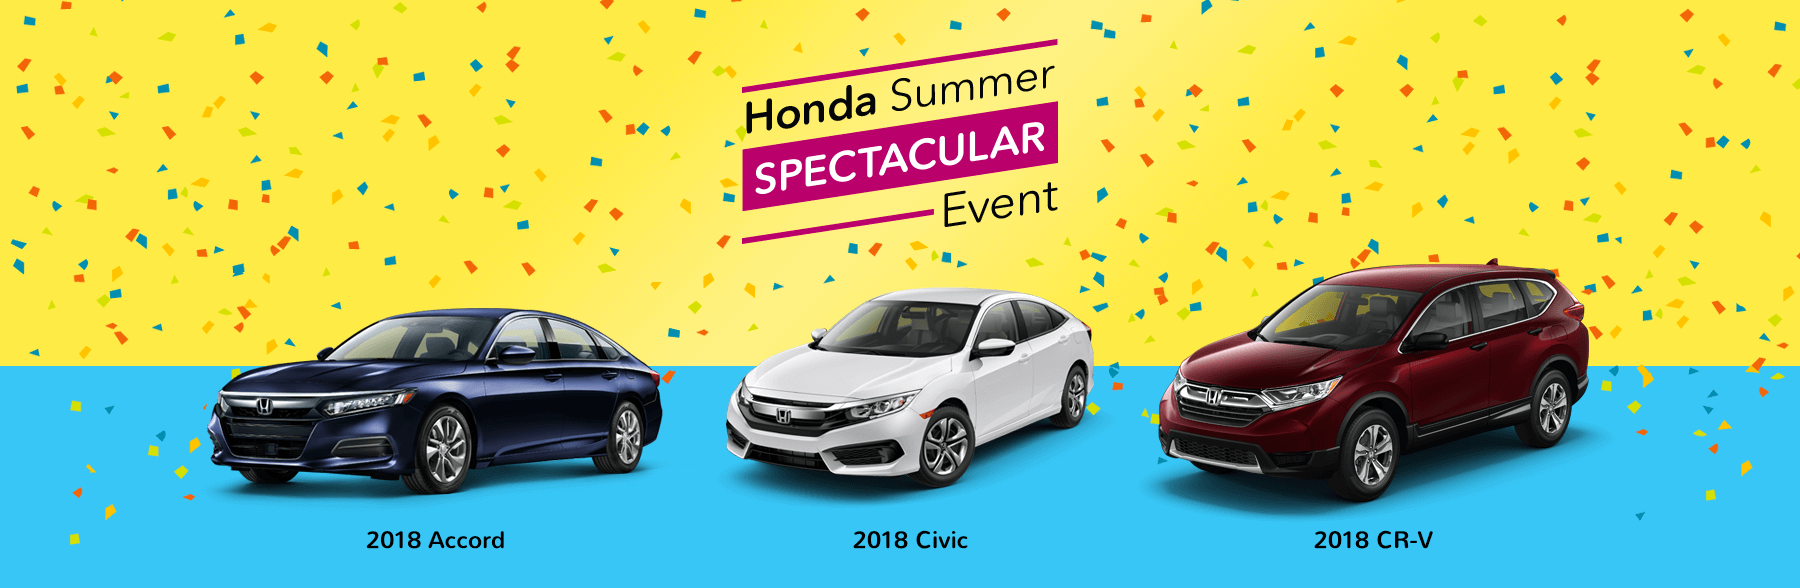 Honda Summer Spectacular Event Slider